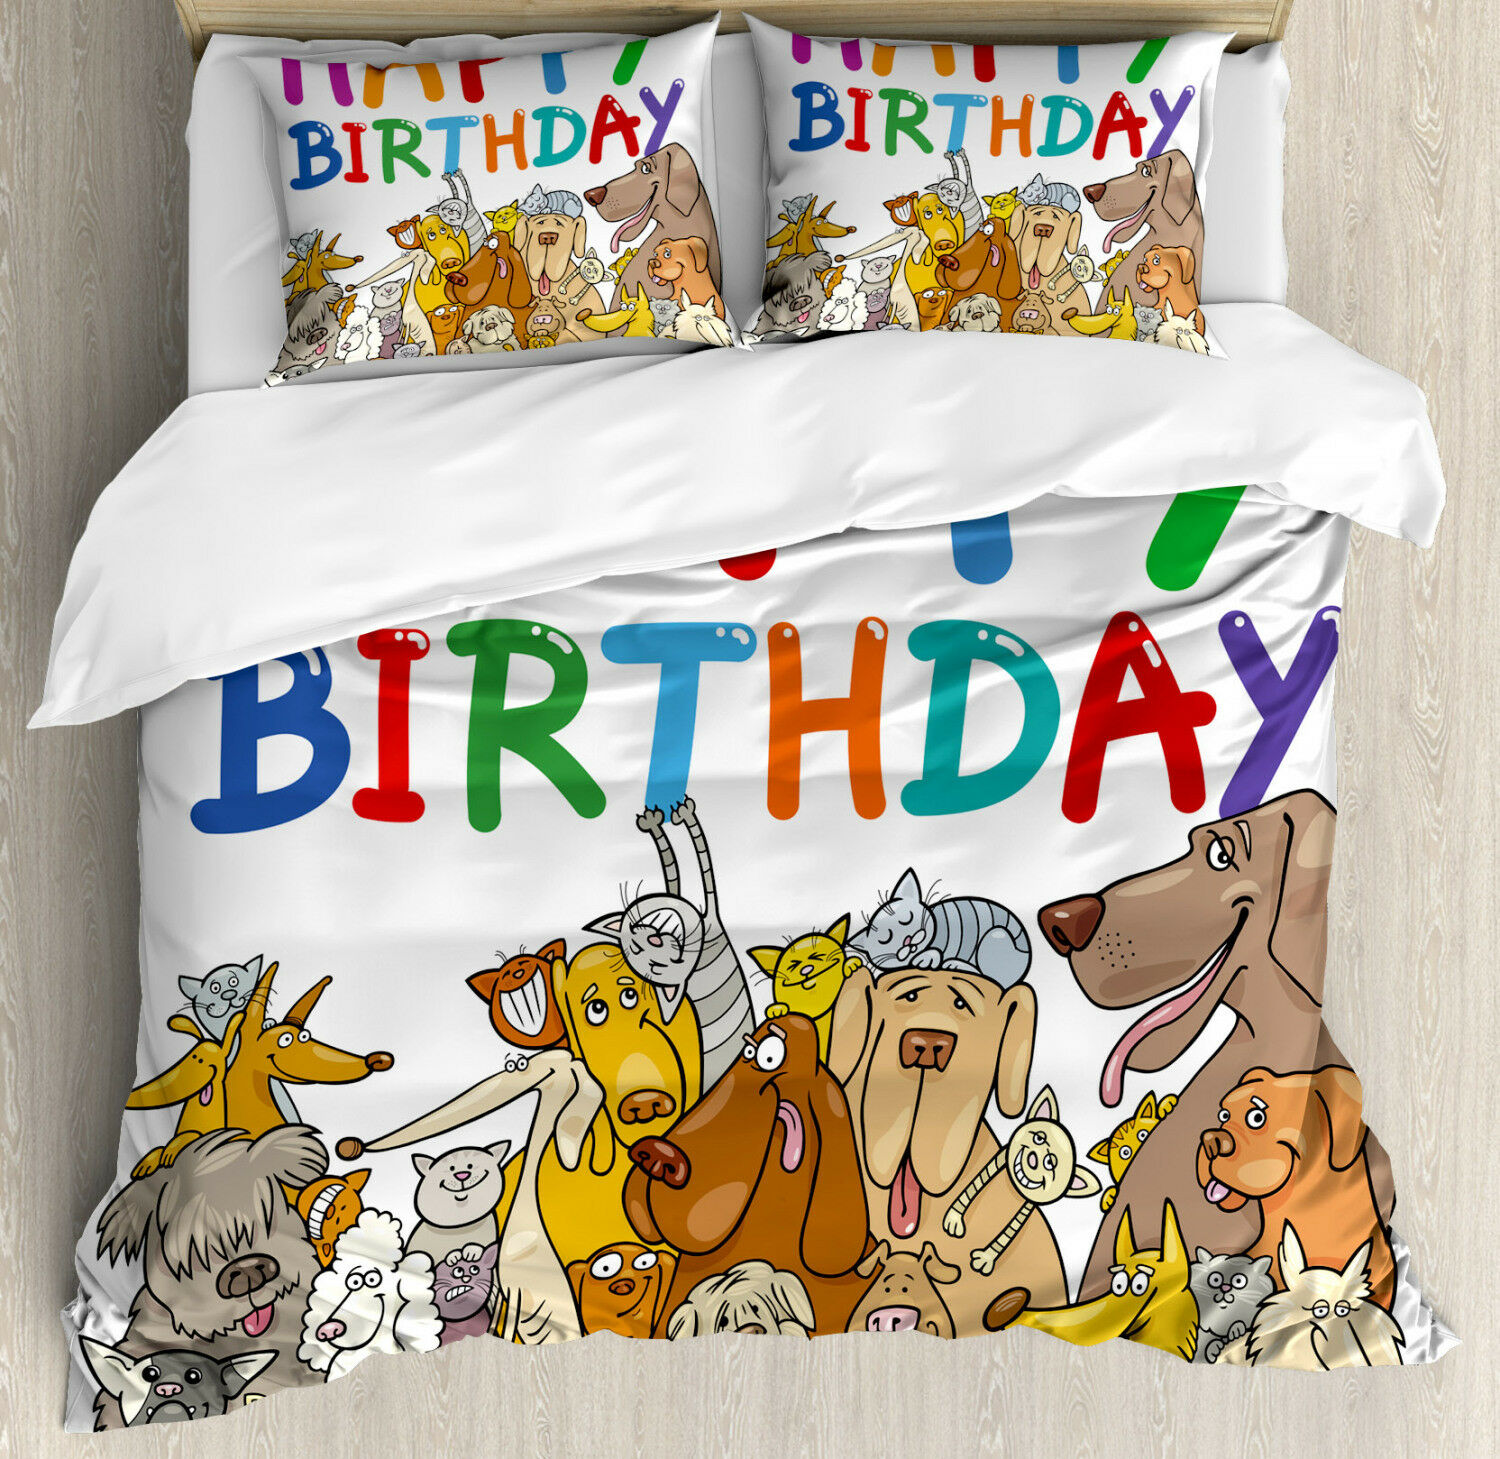 Party Duvet Cover Set with Pillow Shams Streets Dogs Animals Print